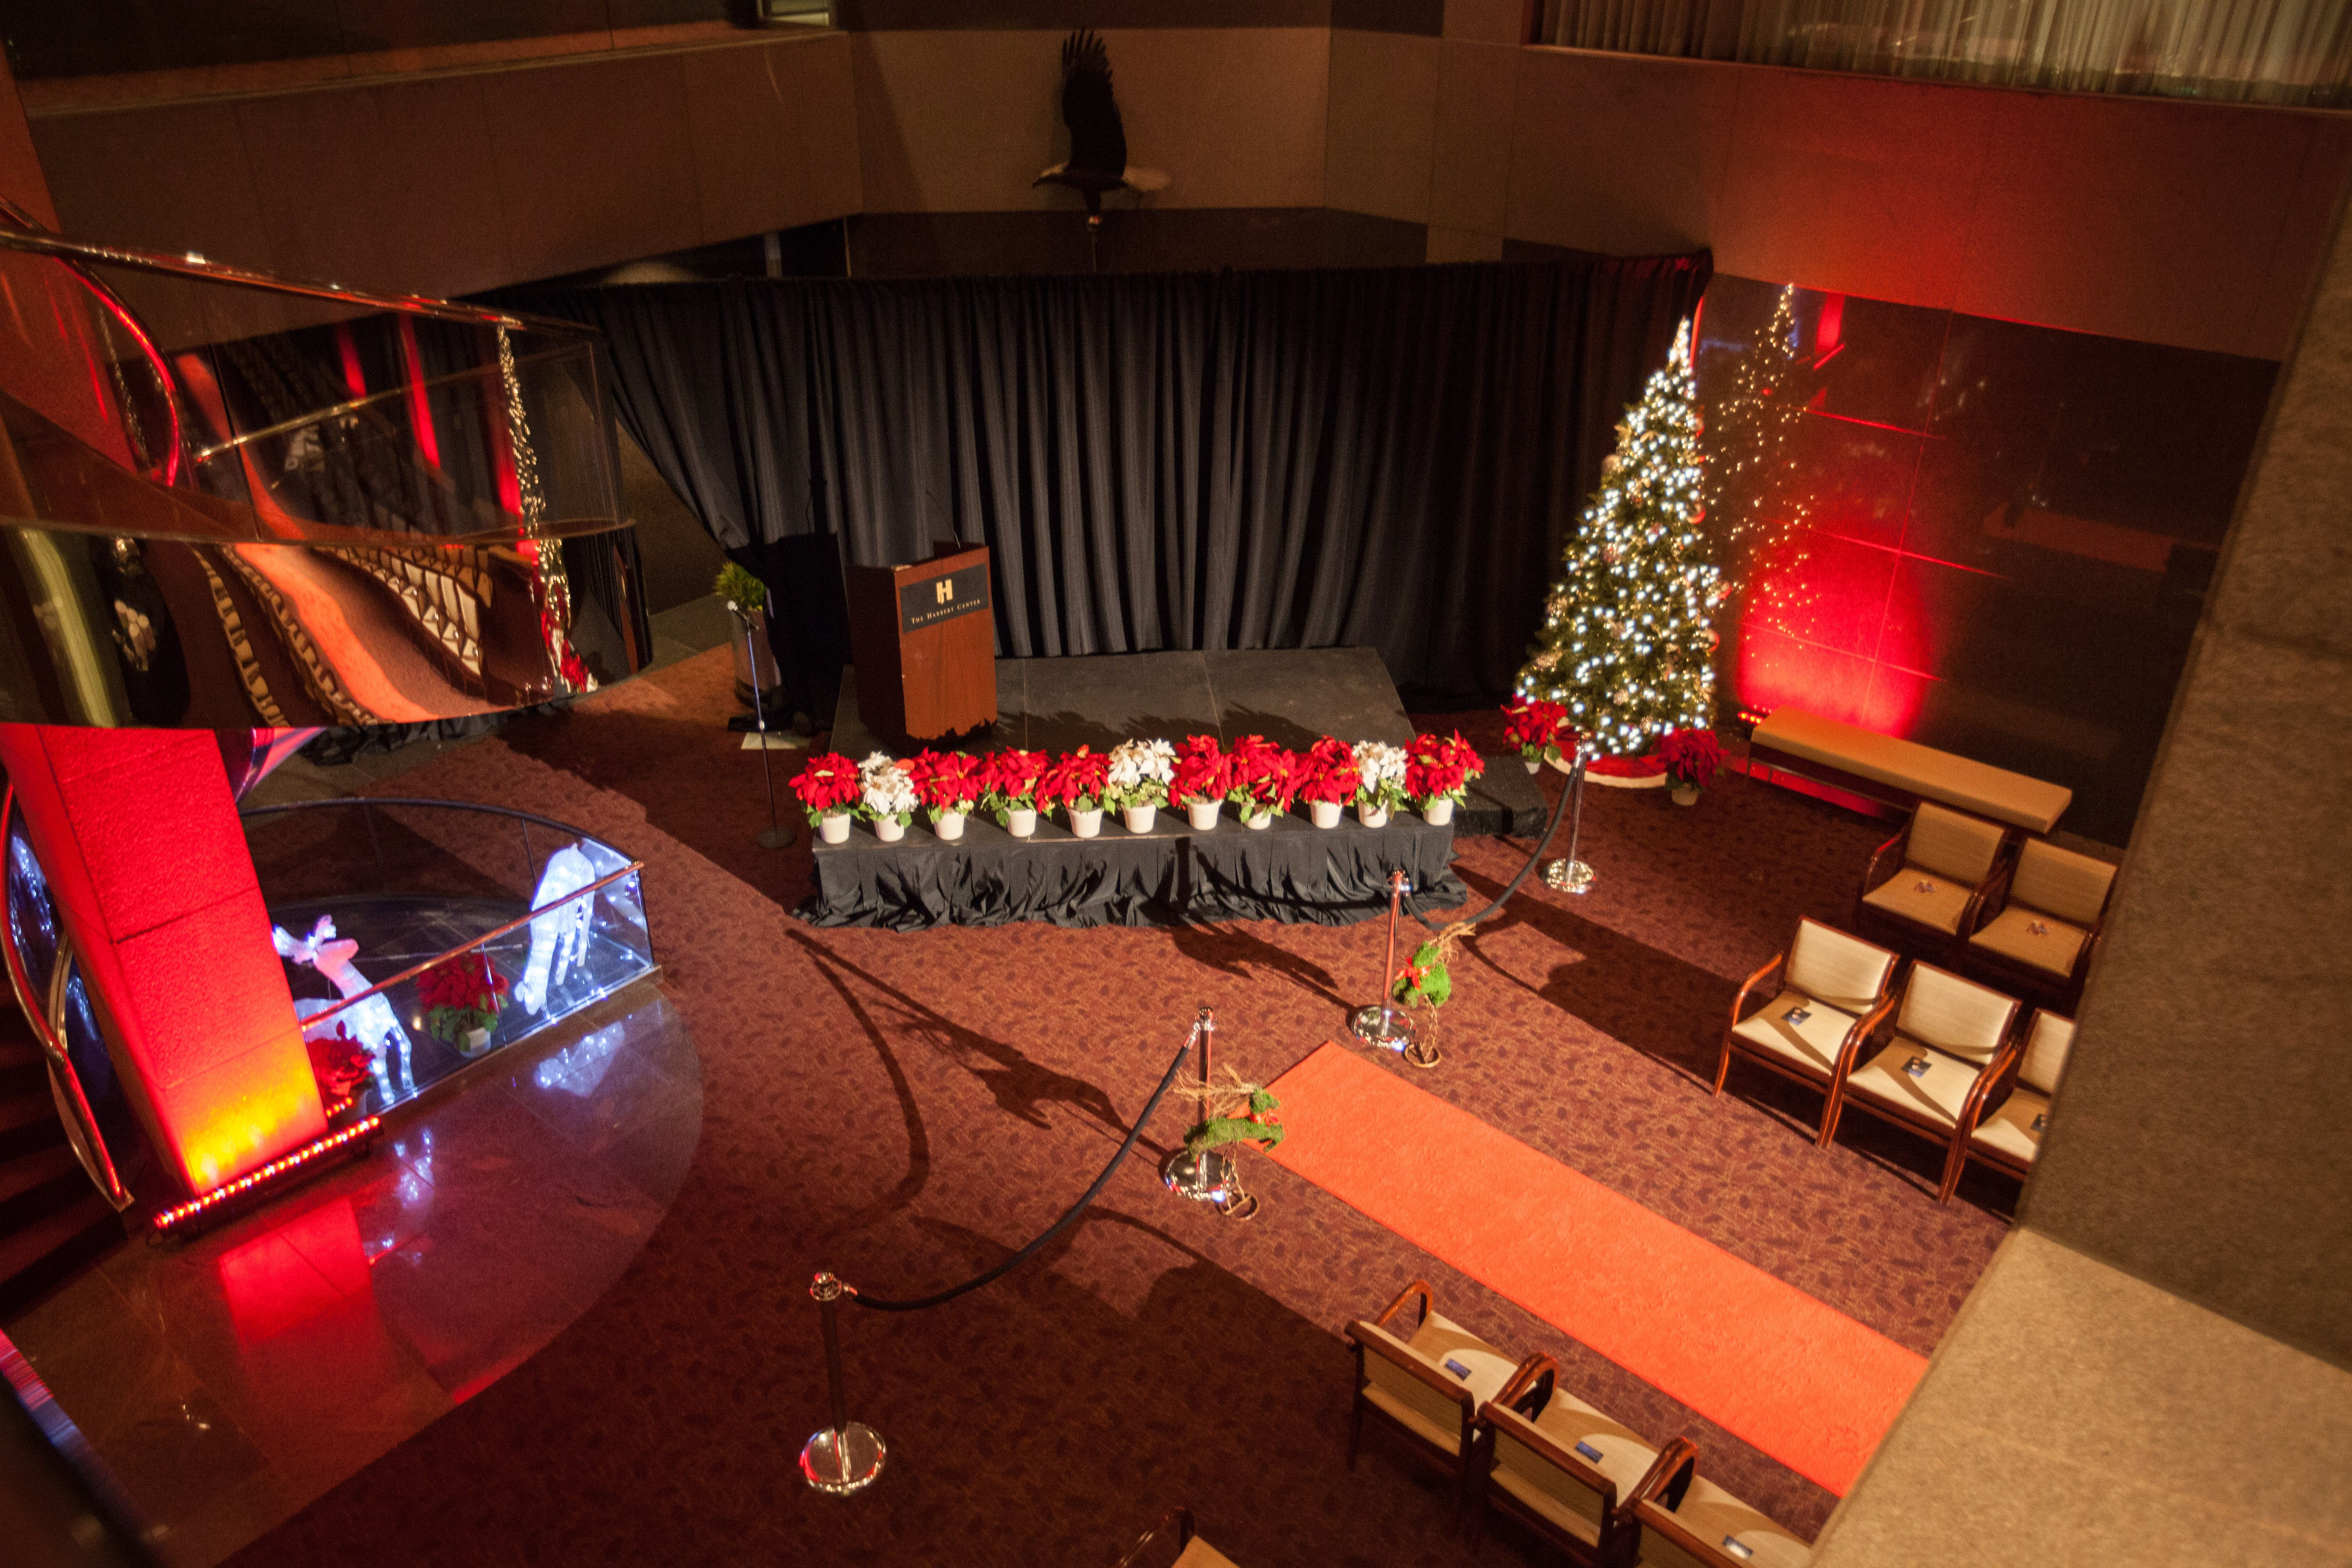 Holiday Charity Event and Fundraiser Stage